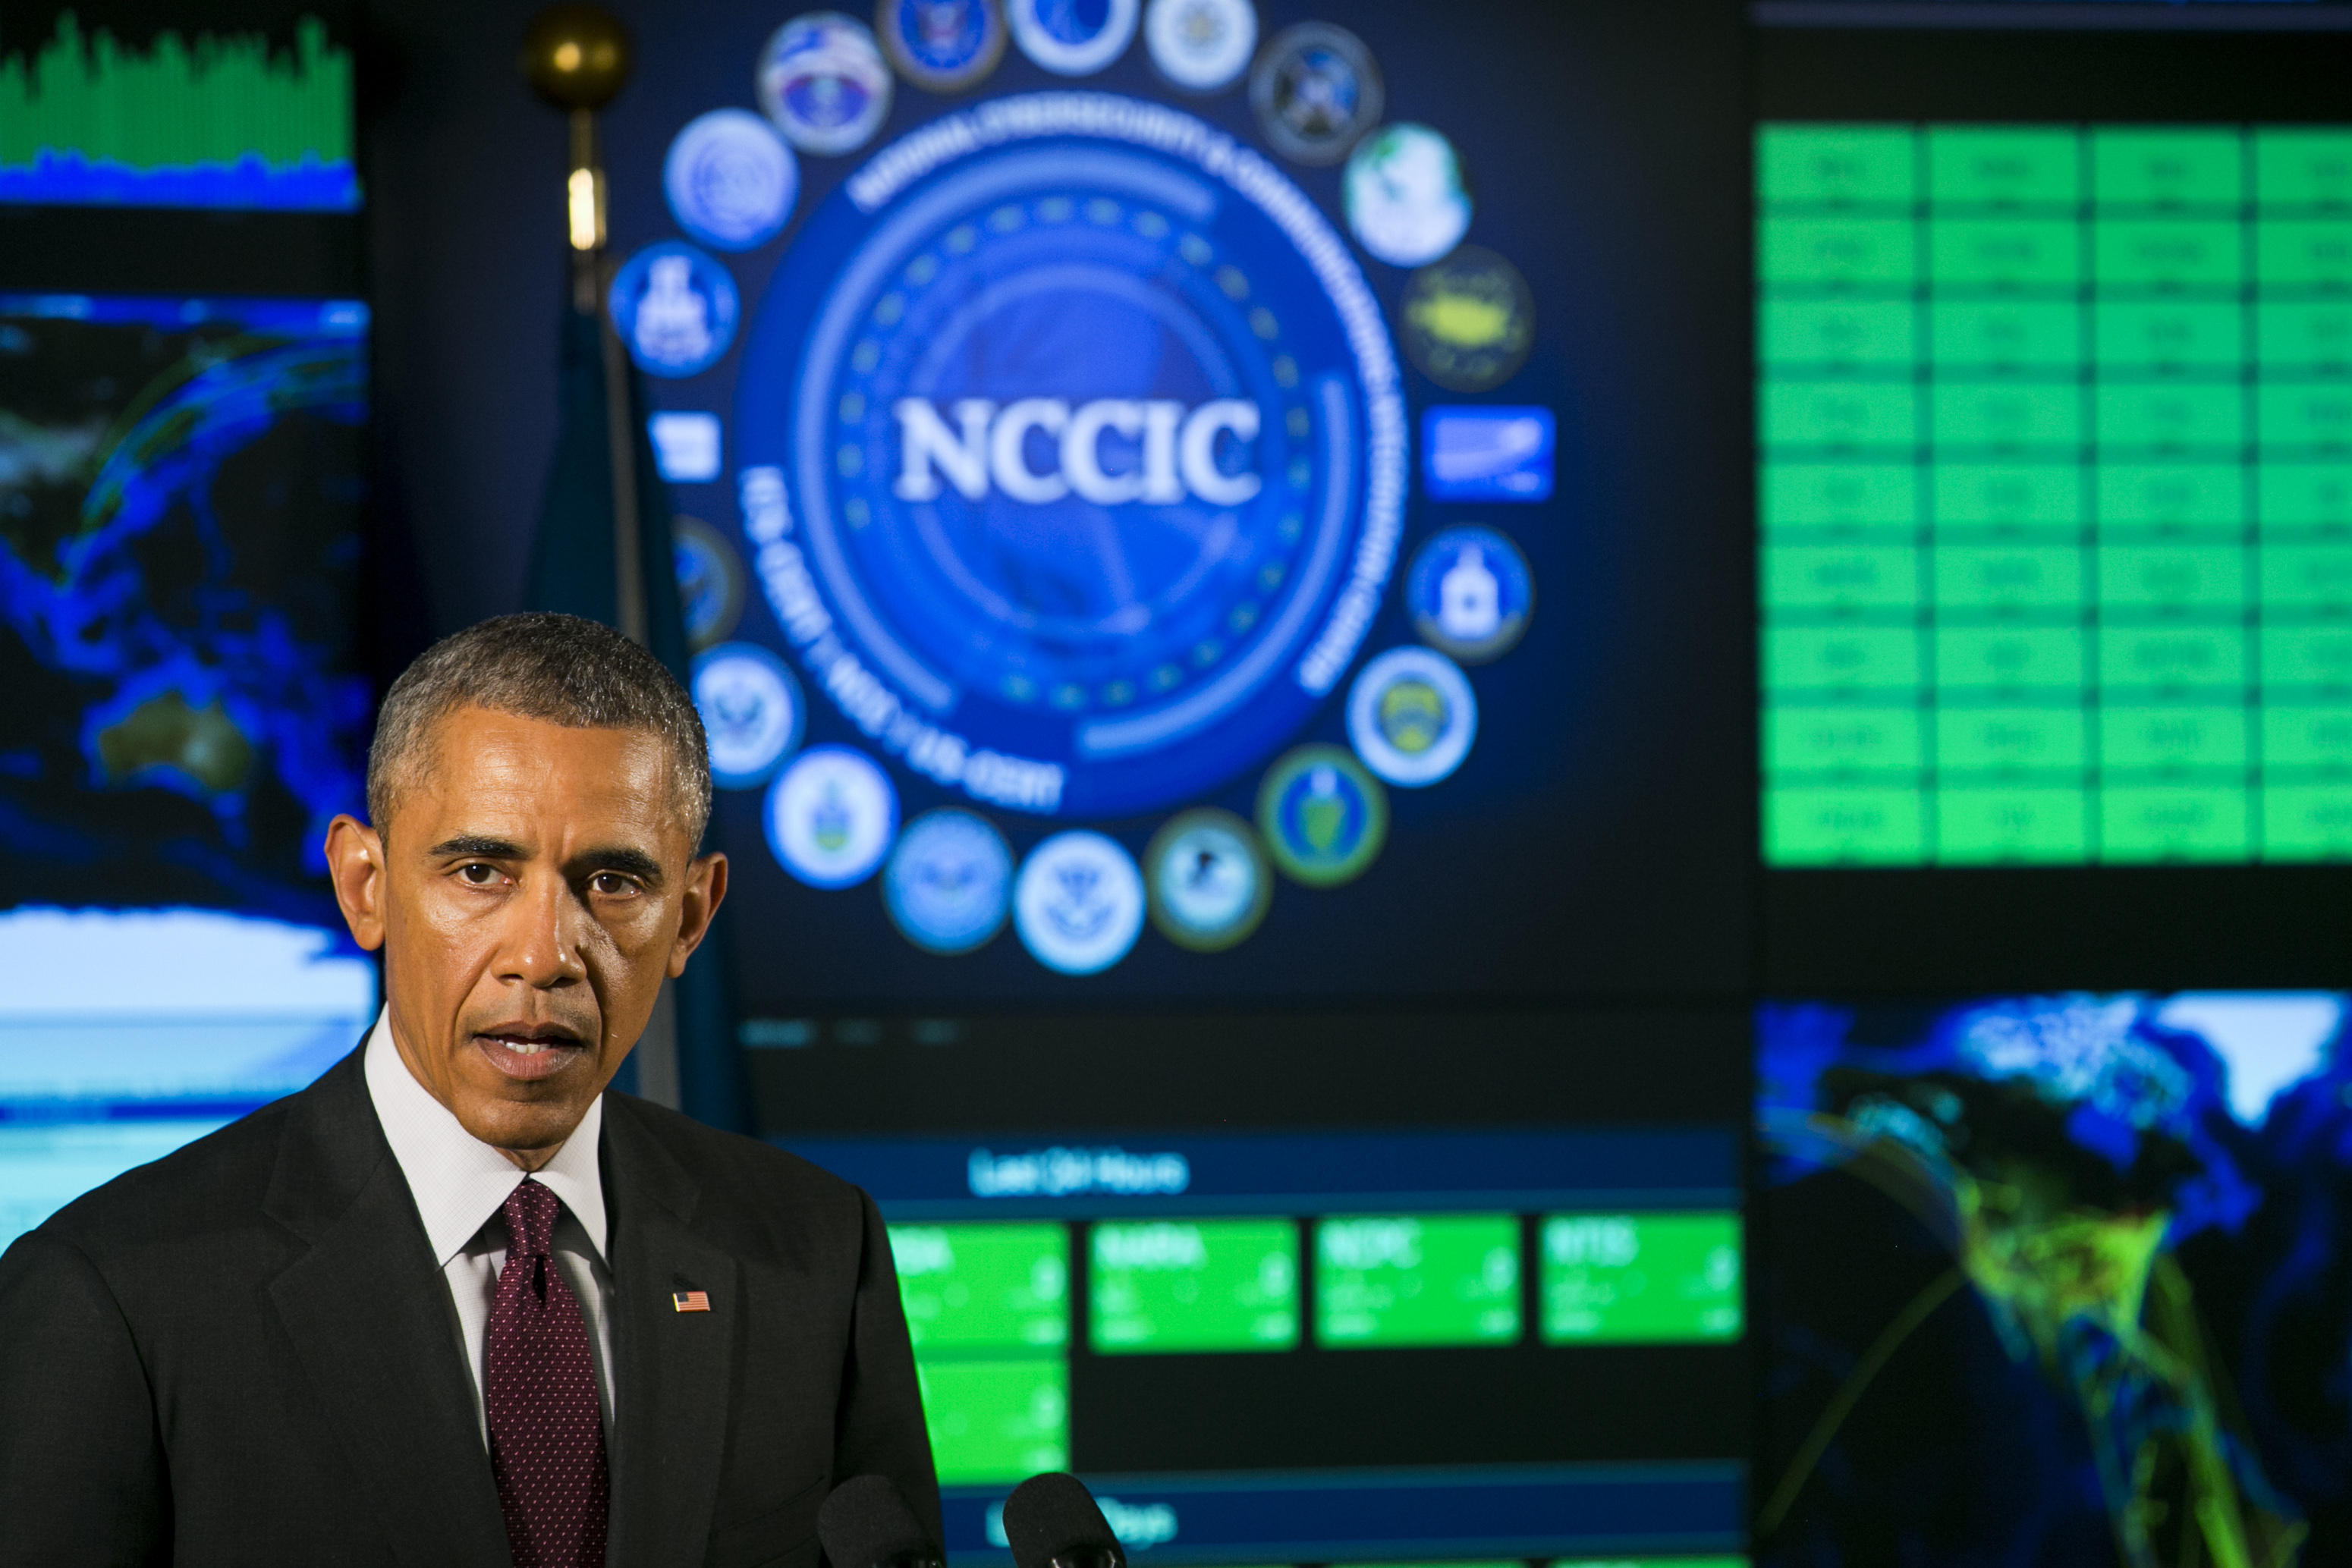 U.S. President Barack Obama delivers remarks at the National Cybersecurity and Communications Integration Center (NCCIC) on January 13, 2015 in Arlington, Virginia.